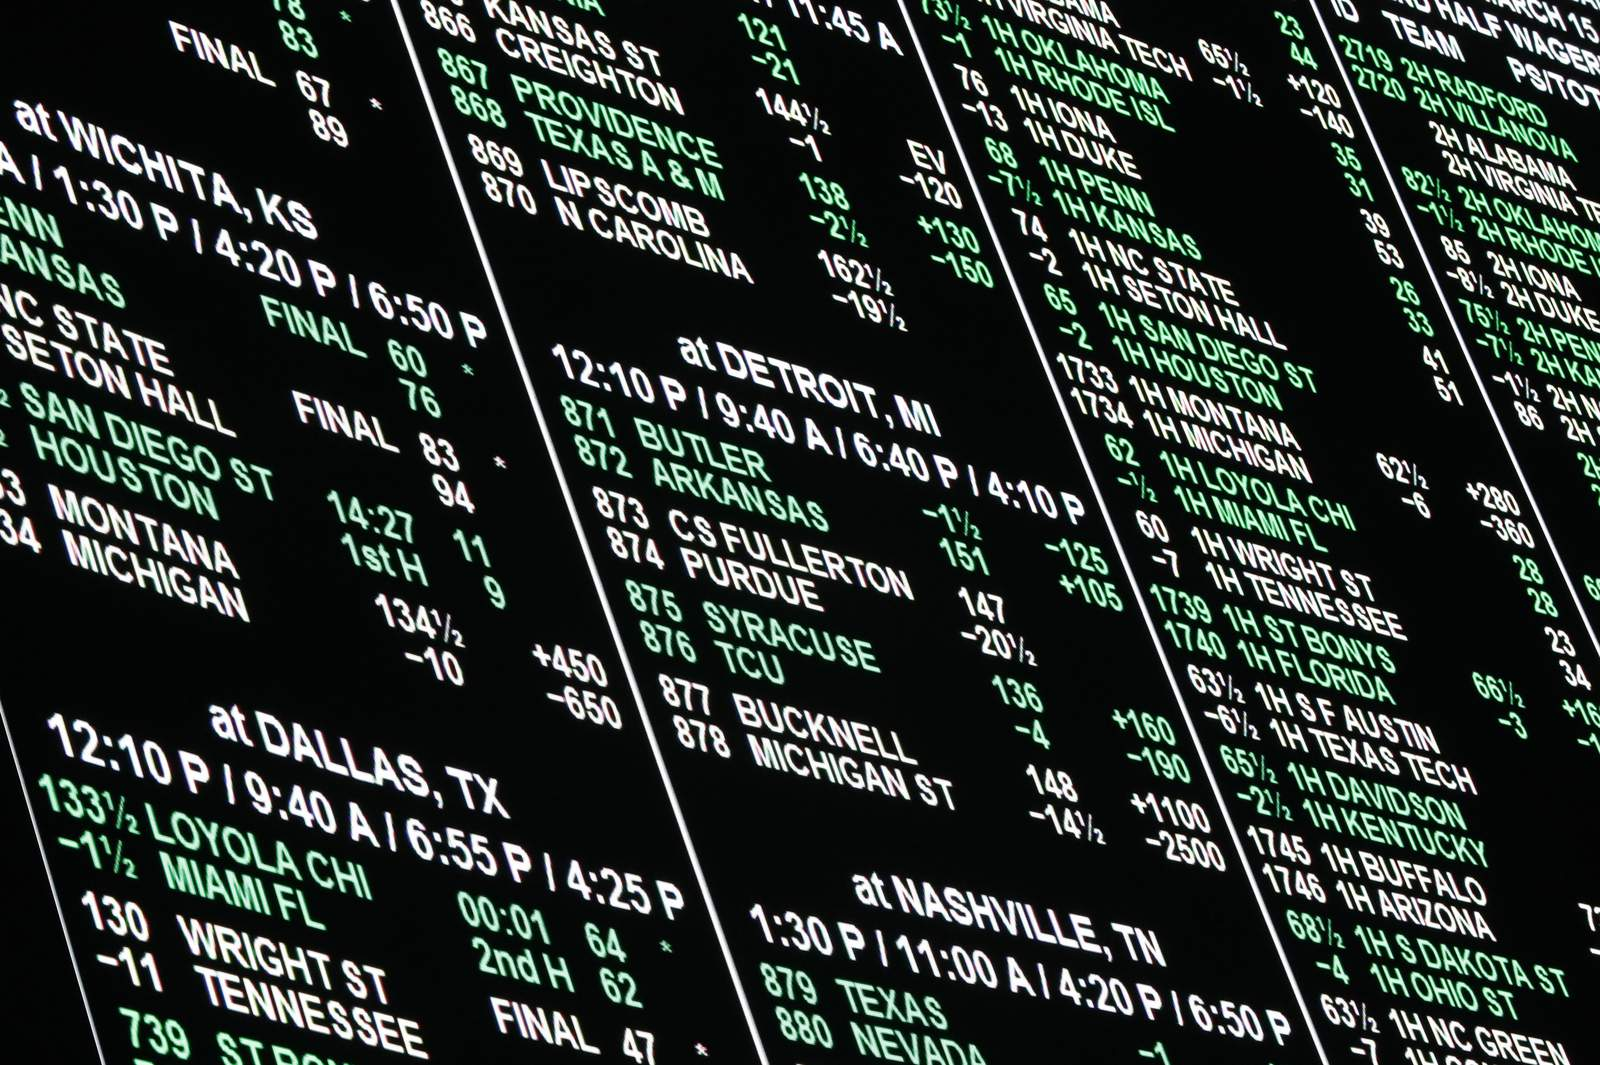 Las vegas betting lines college basketball betting spread definition